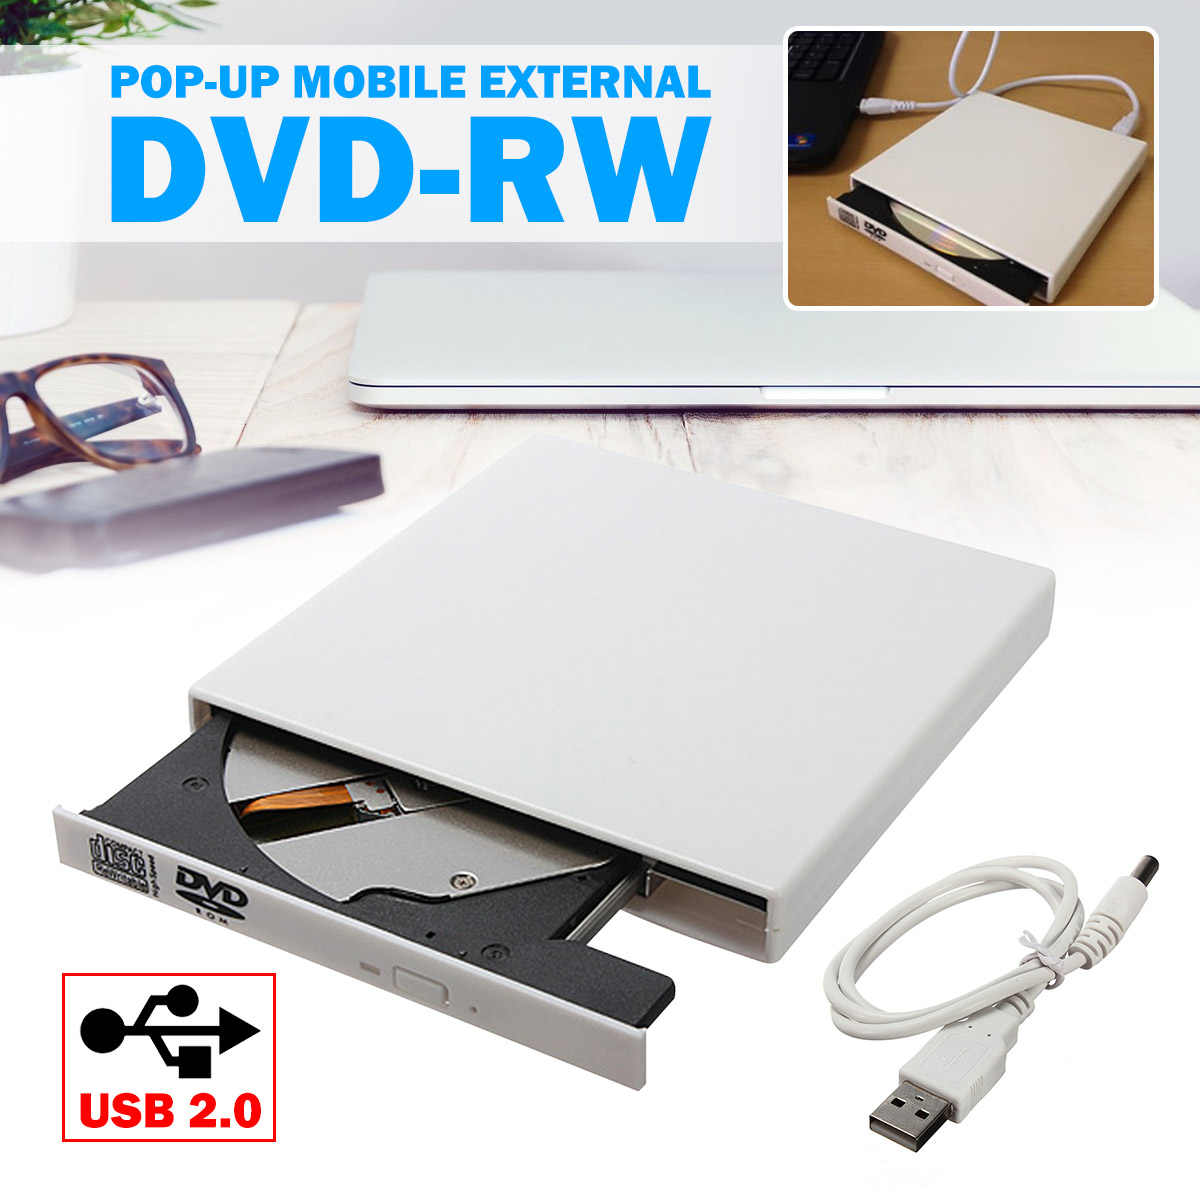 Hohe Qualität USB 2.0 Tragbare Ultra Slim Externe Slot-in DVD-RW CD-RW CD DVD ROM Player Stick Writer Rewriter Brenner für PC